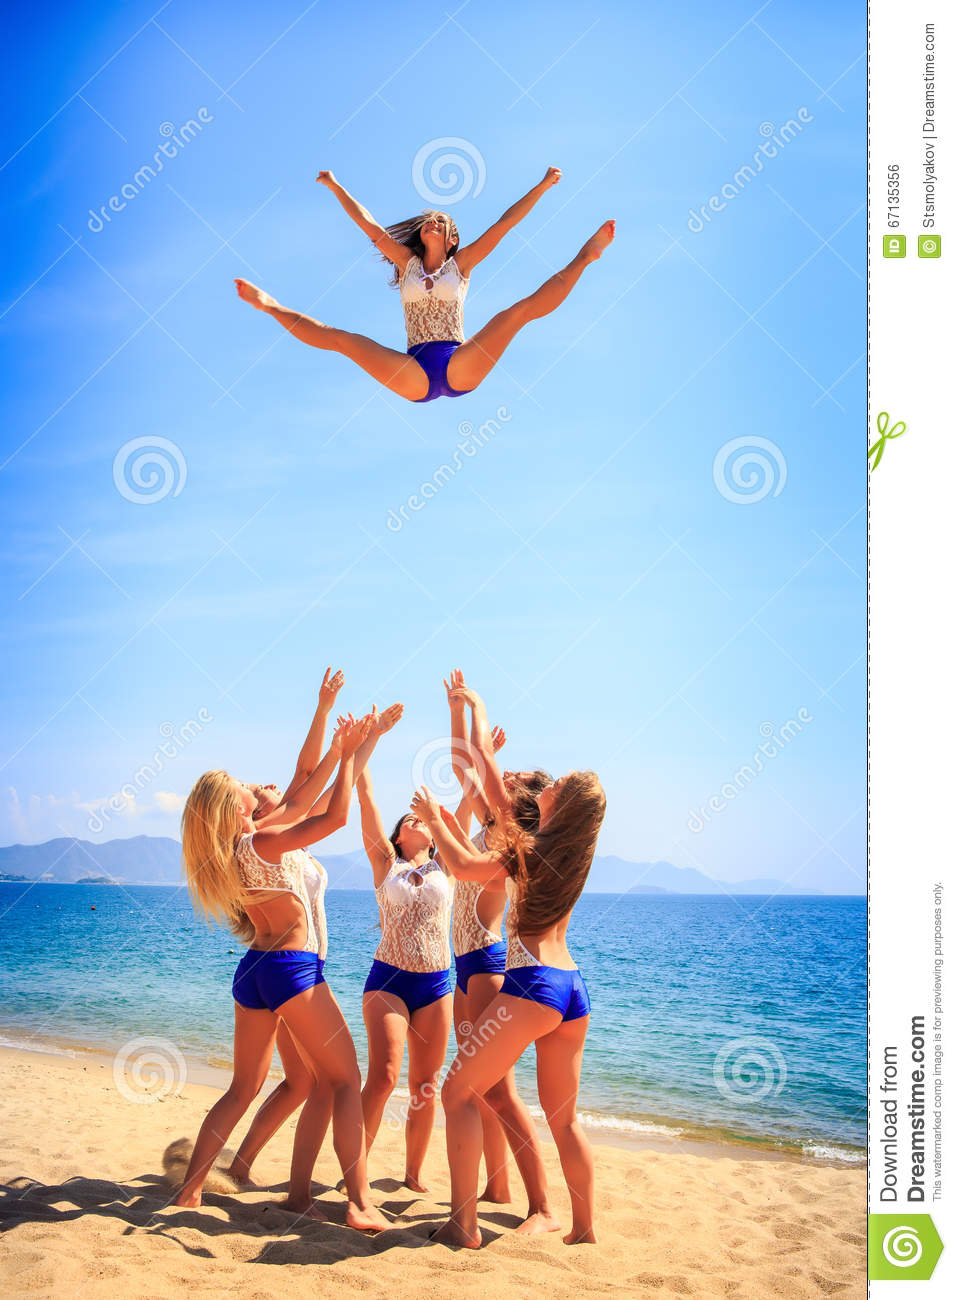 Cheerleader clipart toe touch, Picture #344768 cheerleader clipart toe touch